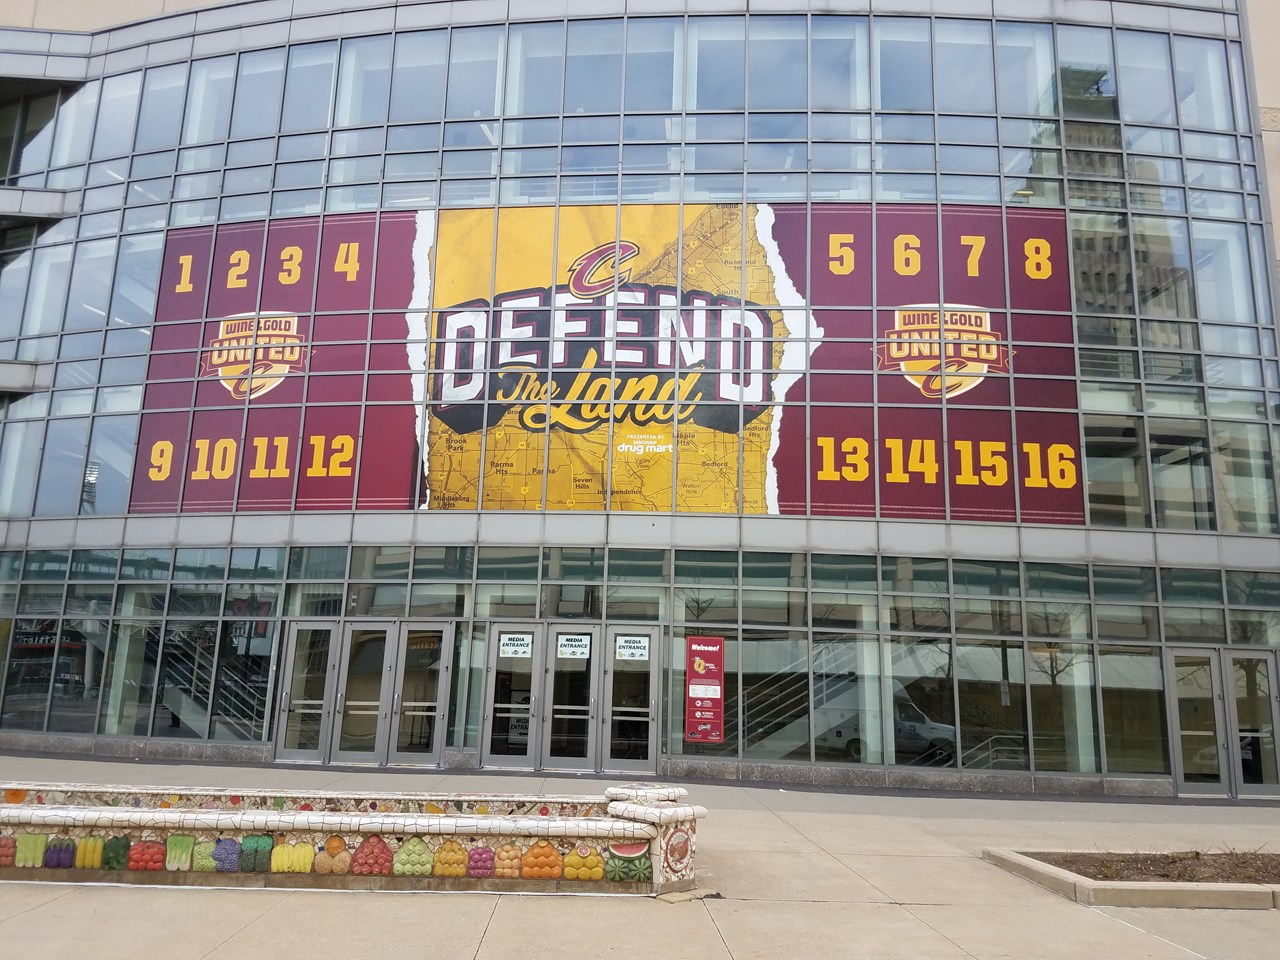 Sports-Facility- Cavs Playoffs Countdown